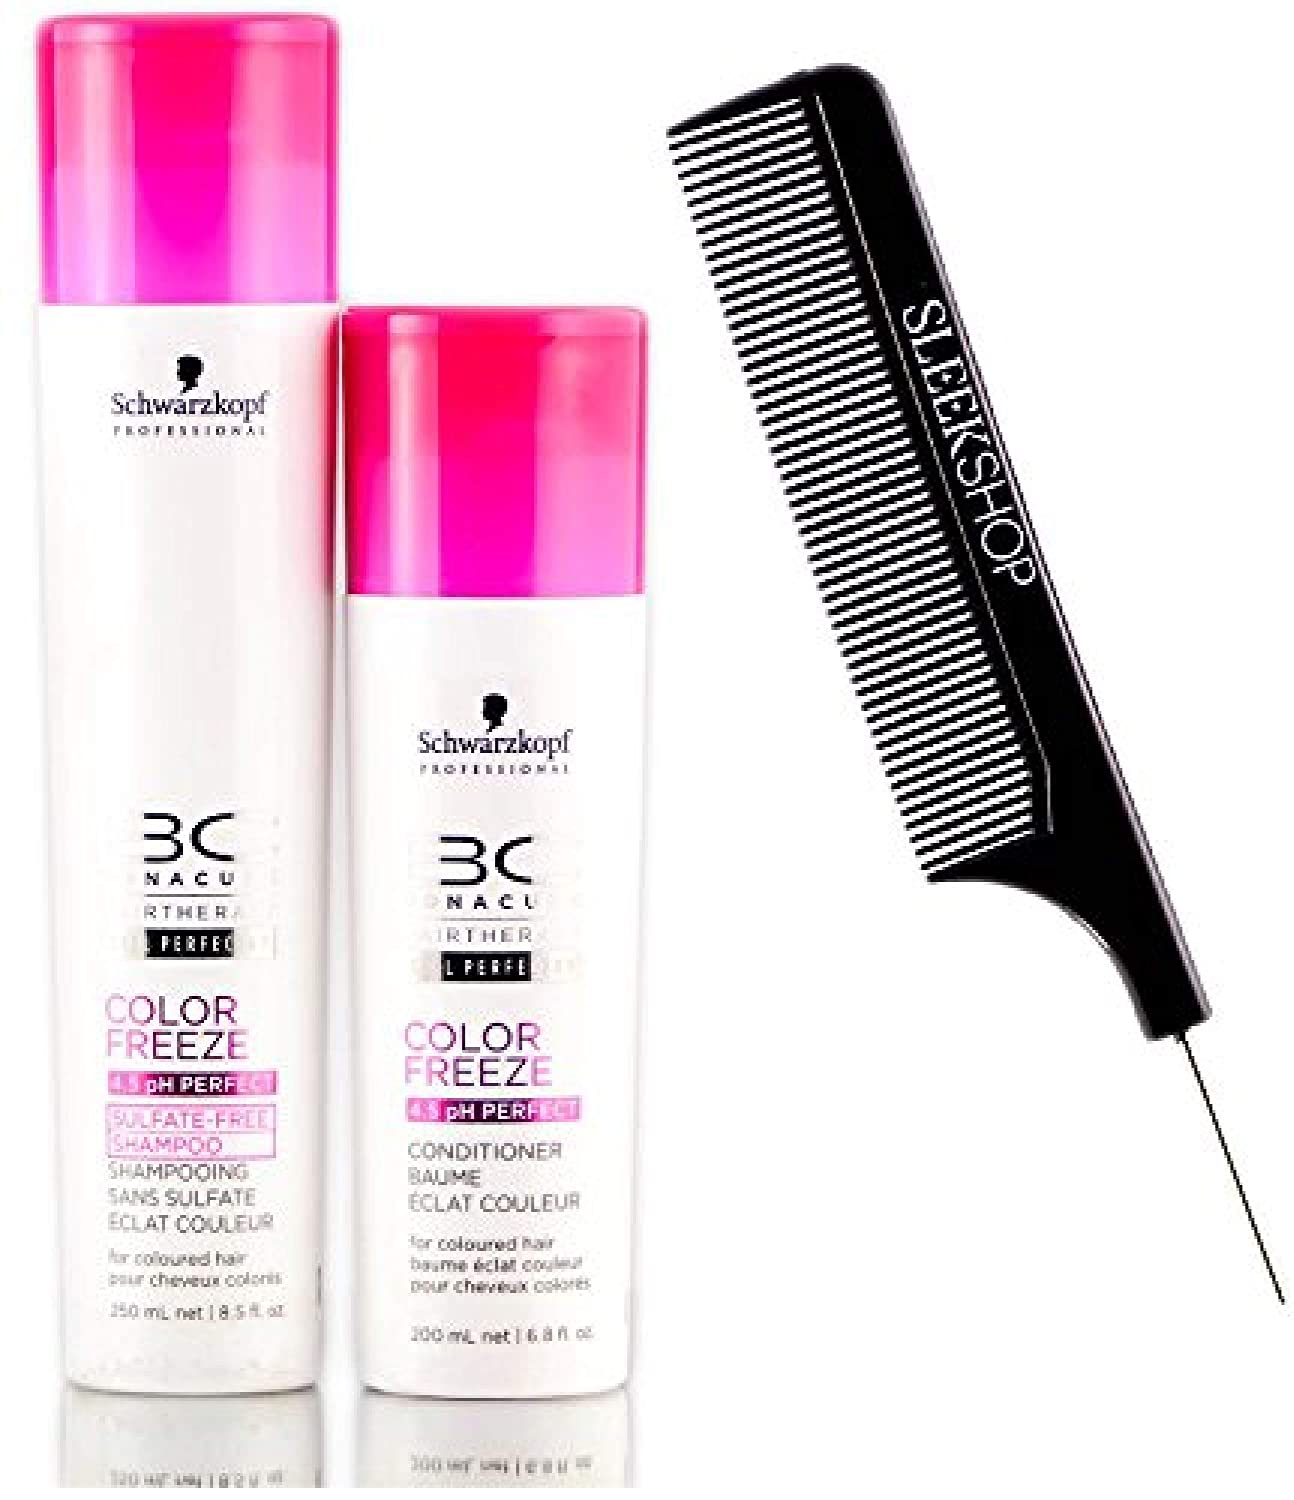 Schwarzkopf BC Bonacure COLOR FREEZE Sulfate-Free SHAMPOO & CONDITIONER Duo SET for overprocessed or colored hair (with Sleek Steel Pin Tail Comb) (8.5 oz/6.8 oz DUO KIT)